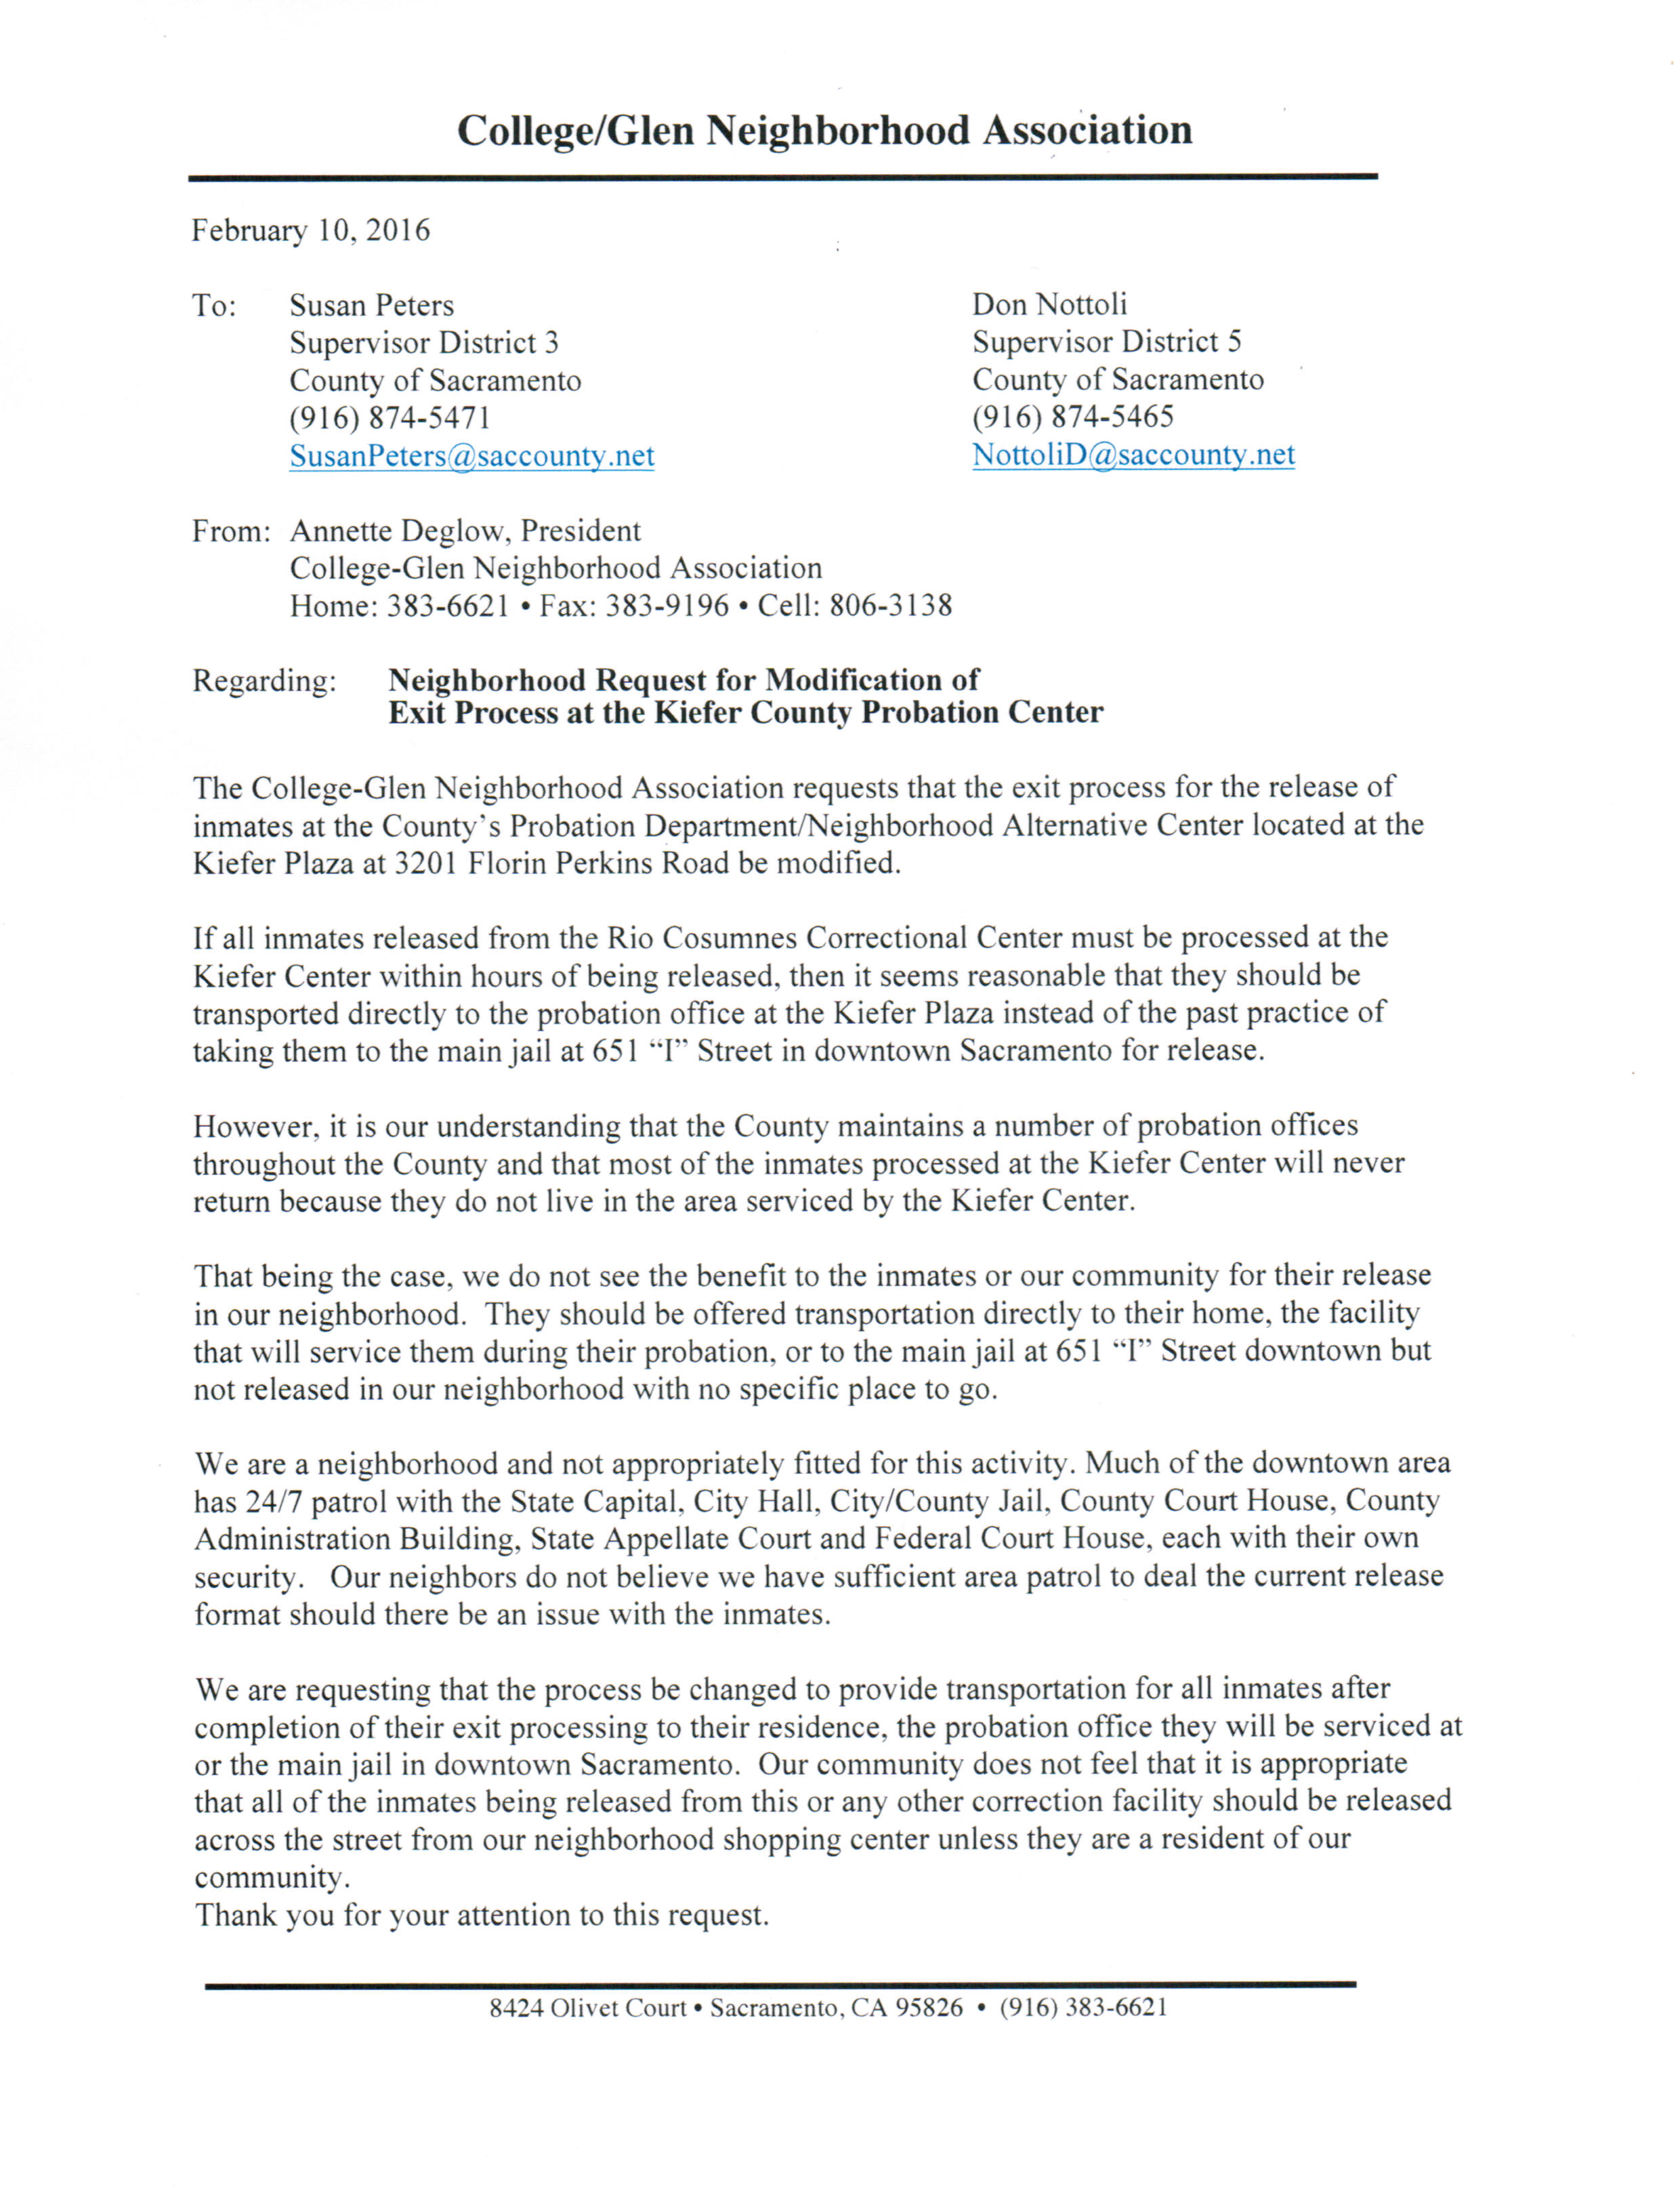 Letters to supervisor susan peters regarding kiefer county probation click image to read entire letter spiritdancerdesigns Gallery